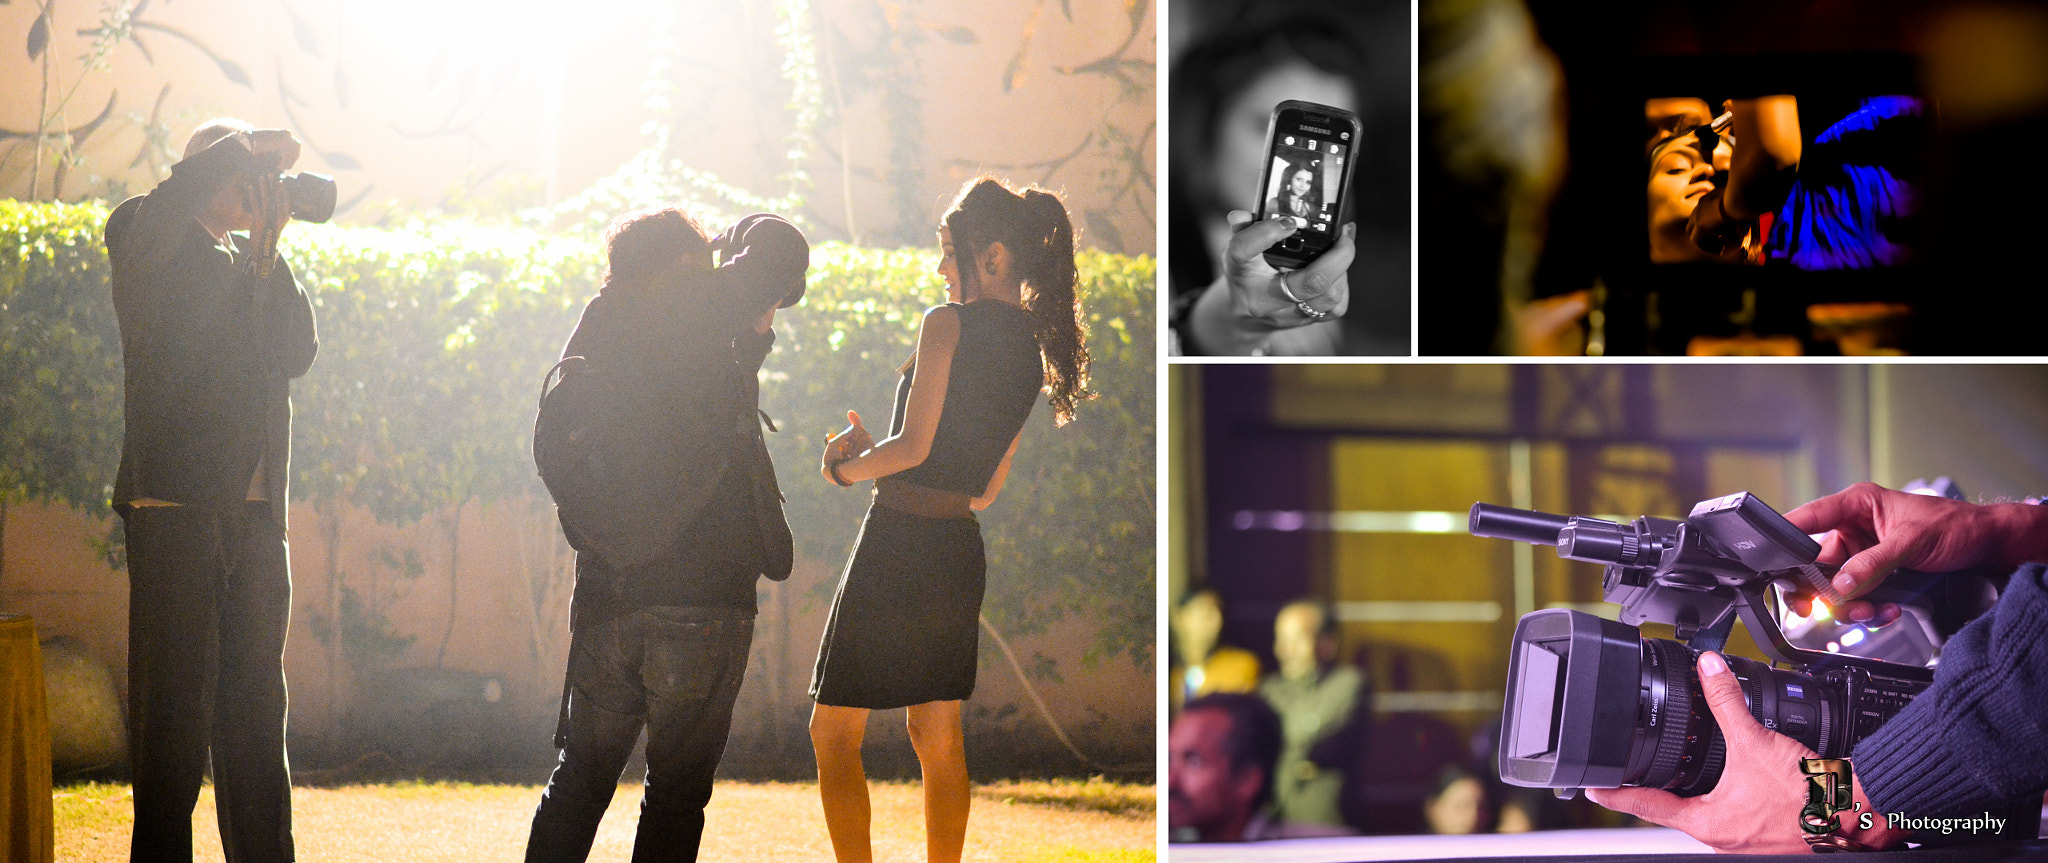 Photograph Click and cameras by Divyam Mehrotra on 500px